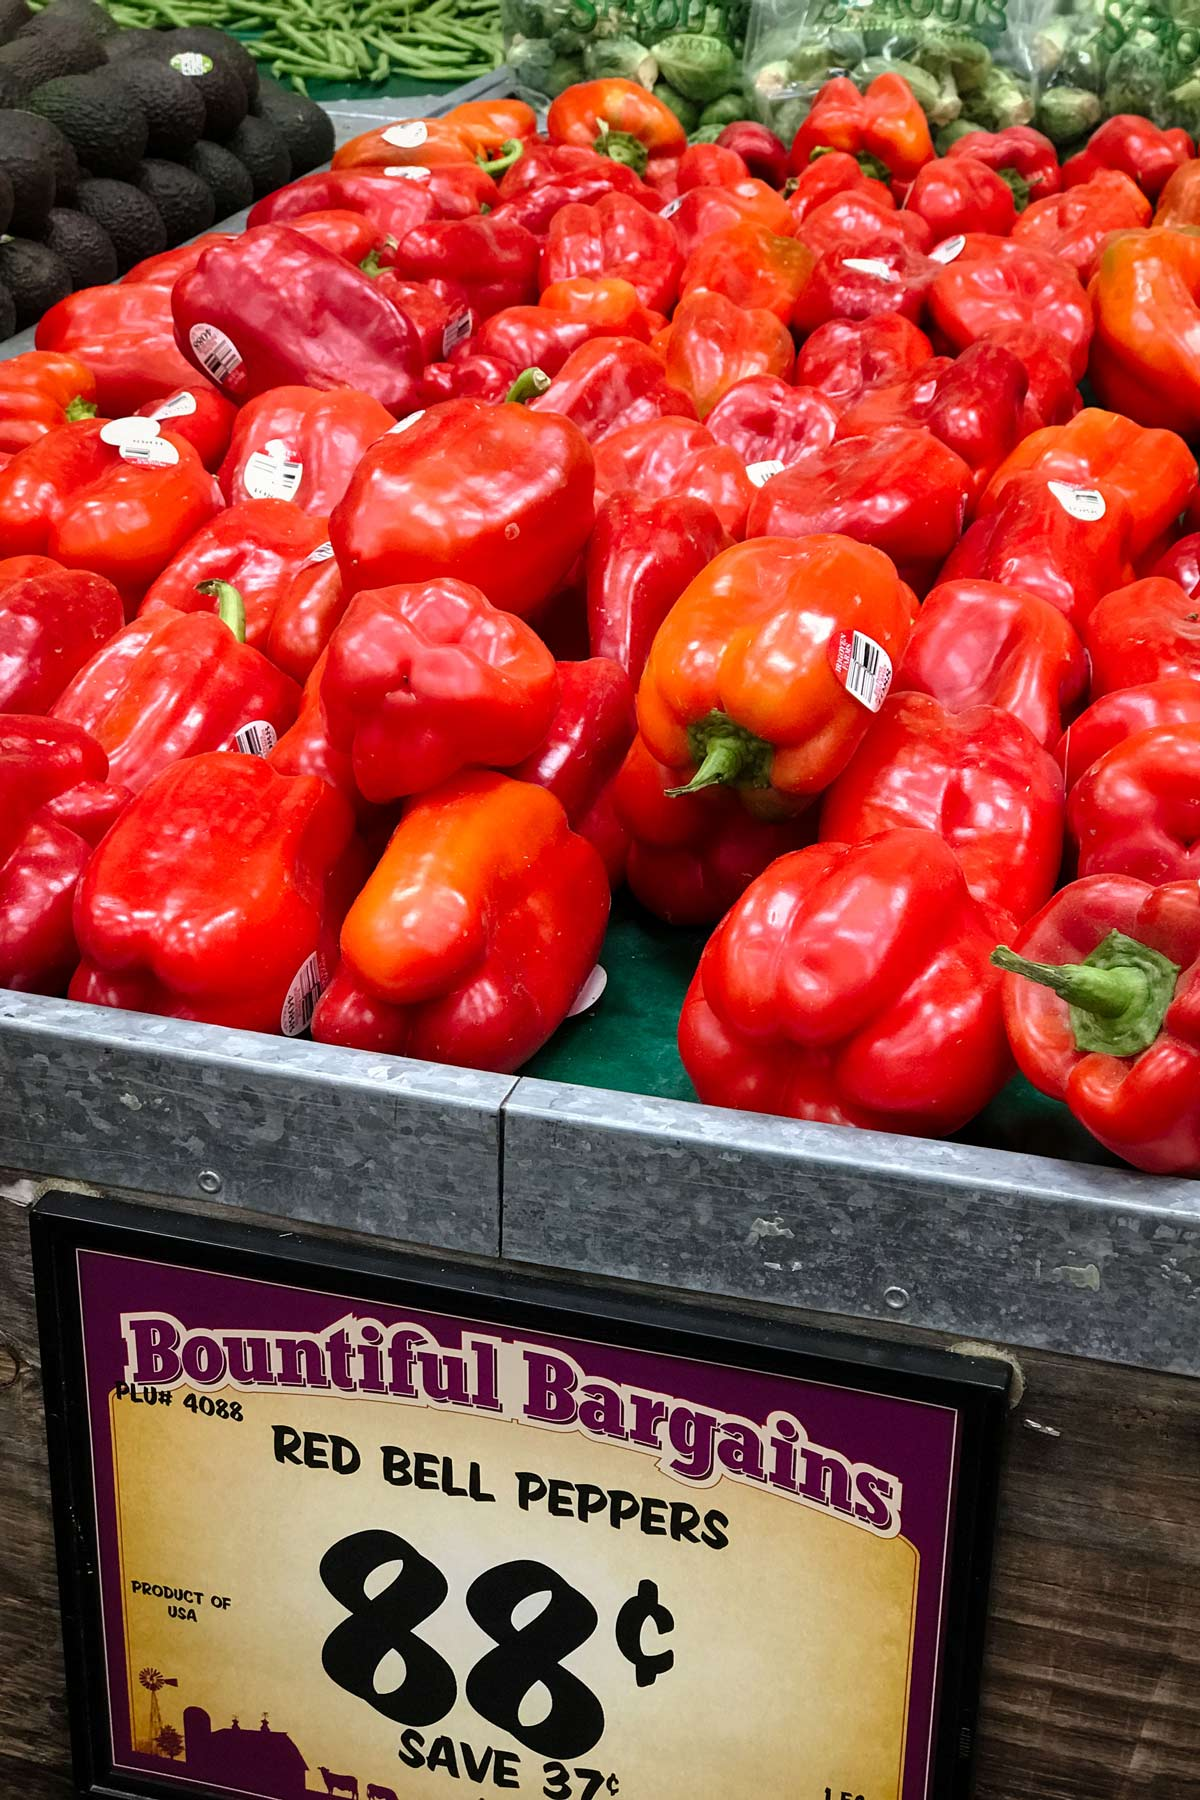 red peppers on display at the grocery store for 88 cents each.